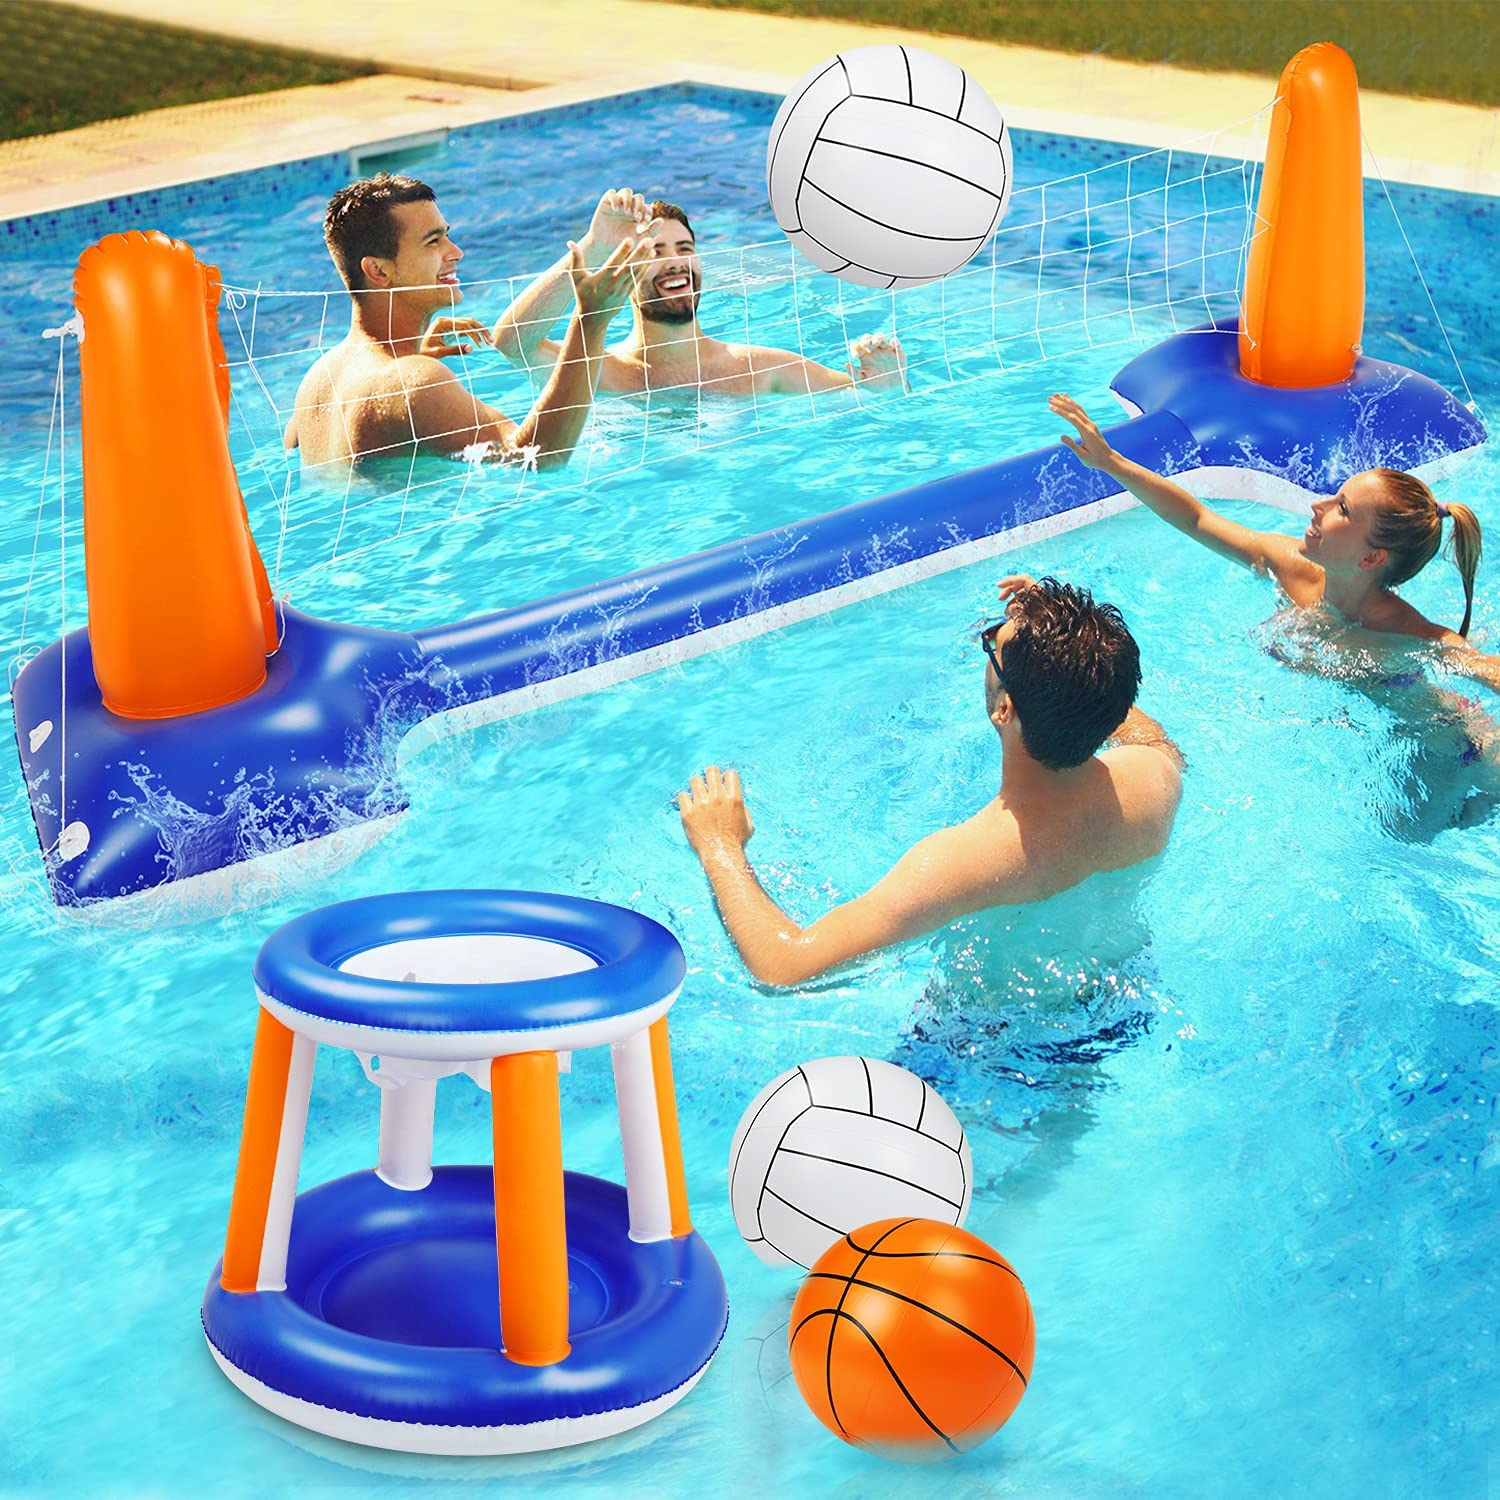 "Pool Volleyball Set, 115"" Inflatable Pool Float Set Include Basketball Hoop Set & Balls Floating Swimming Pool Toy Pool Volleyball Game for Kids and Adults (115"" x 38"" x 28""): Sports & Outdoors"